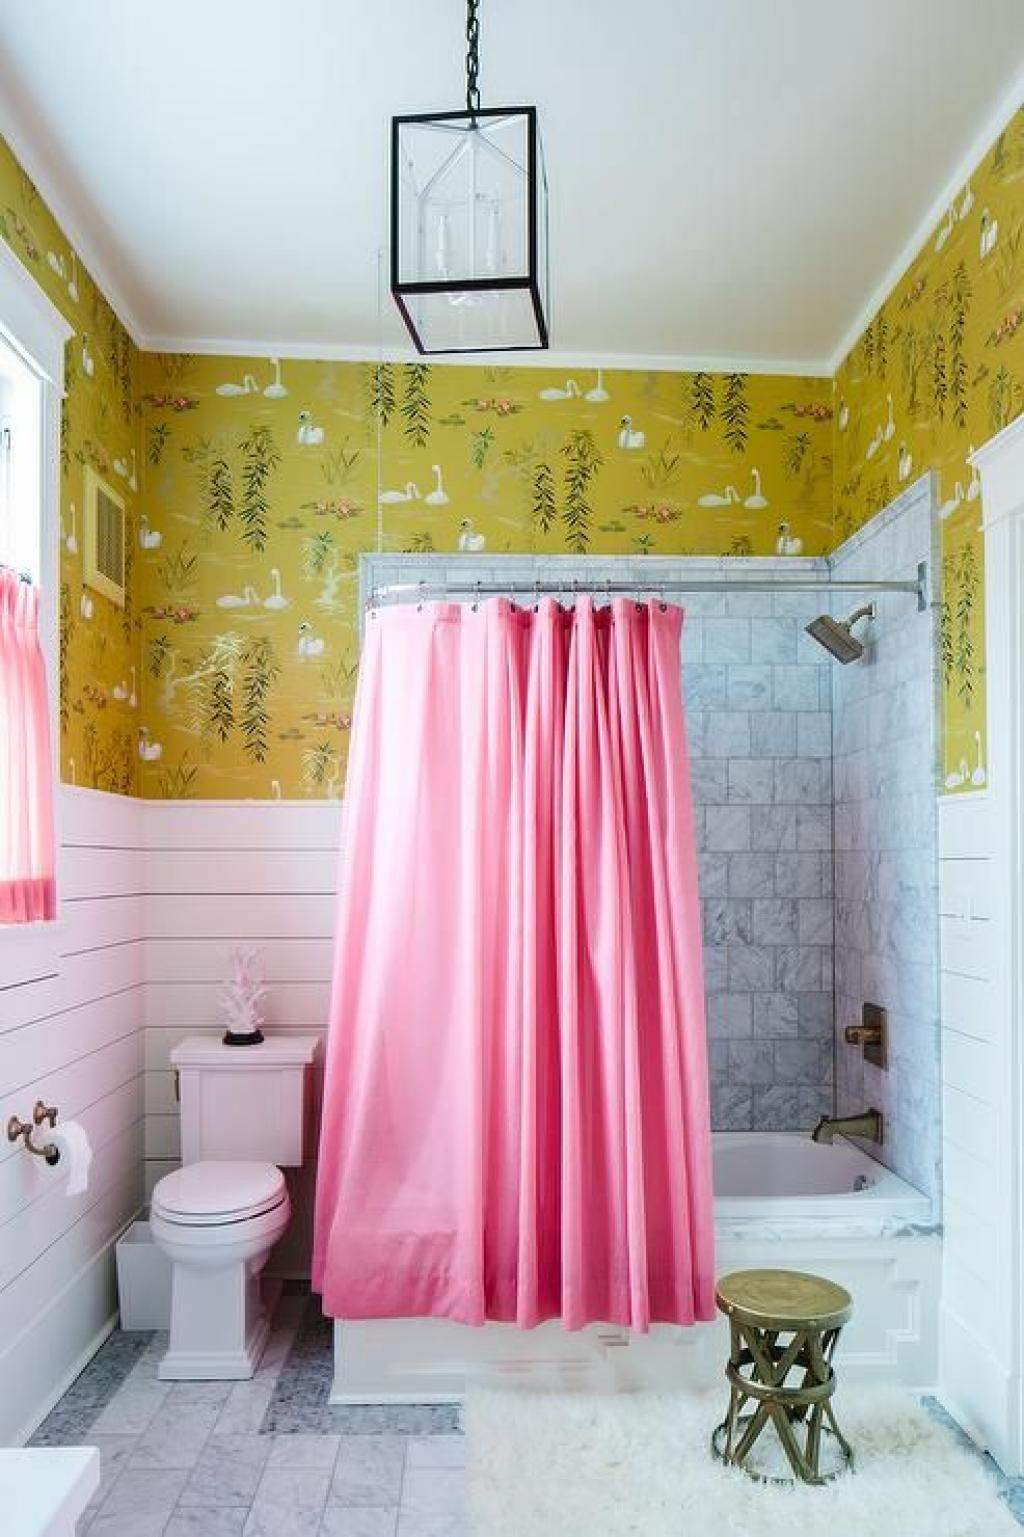 White and yellow abstract bathroom wallpaper ideas with - Red and yellow bathroom ideas ...